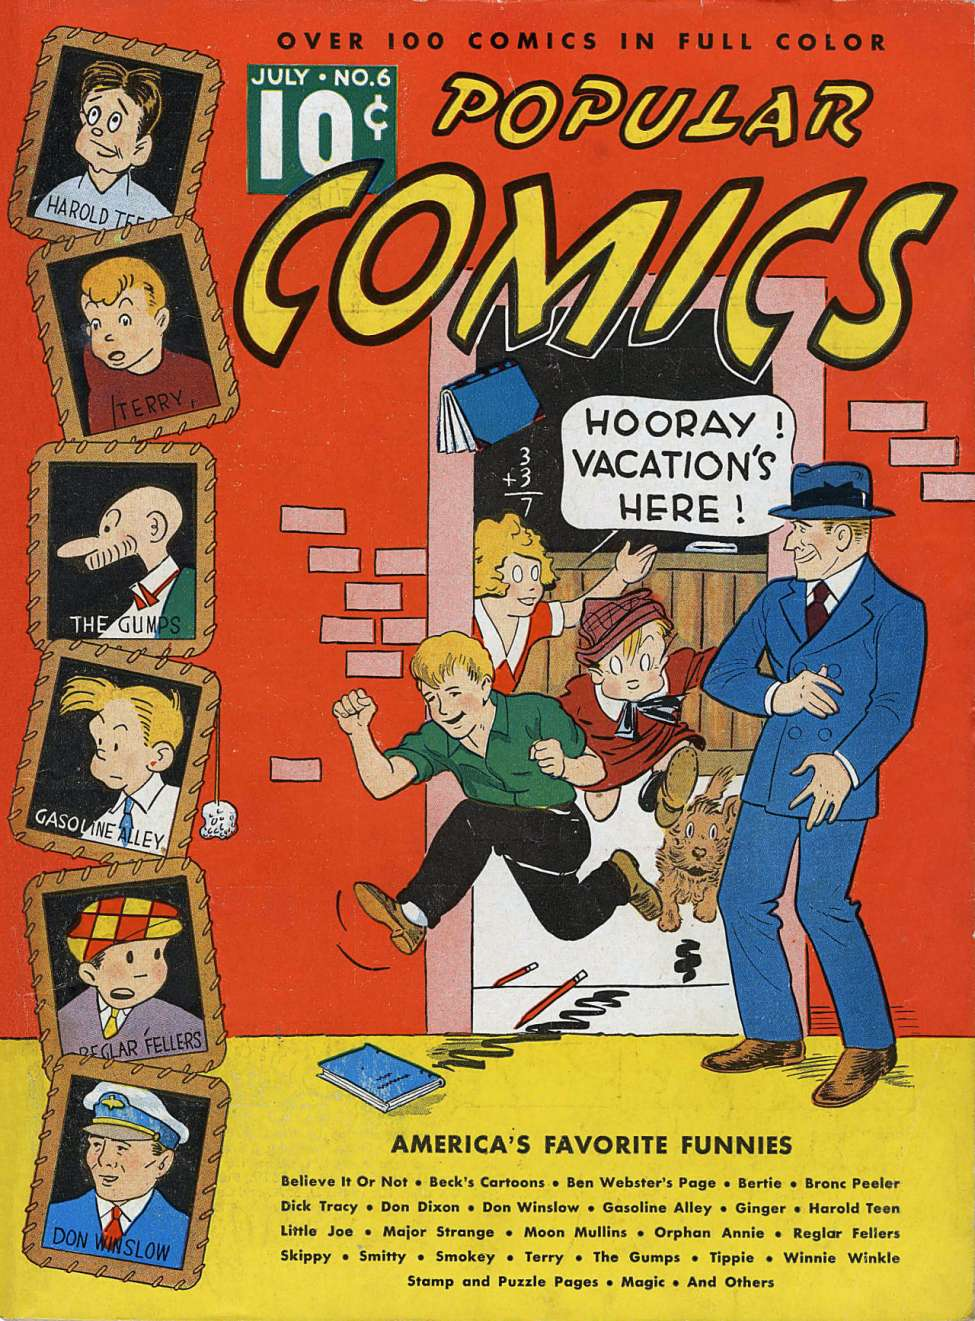 Comic Book Cover For Popular Comics #6